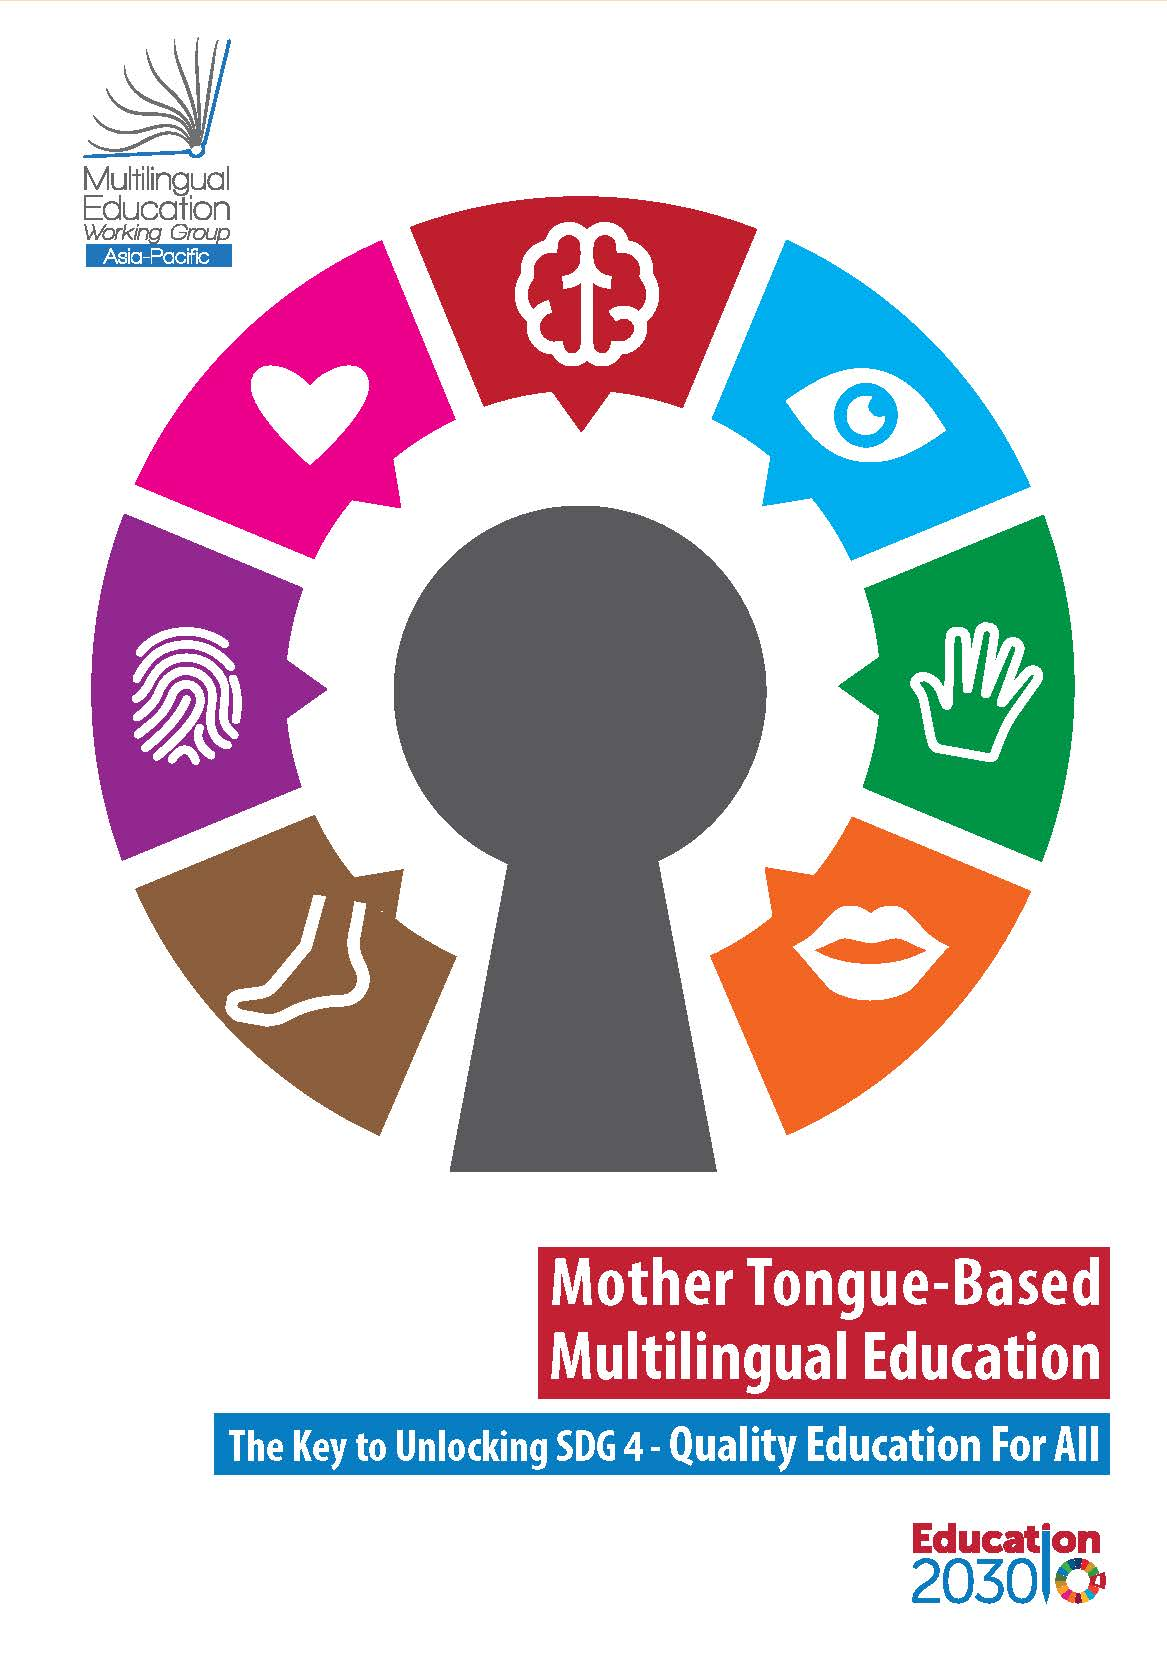 Content and Pedagogy for the Mother Tongue